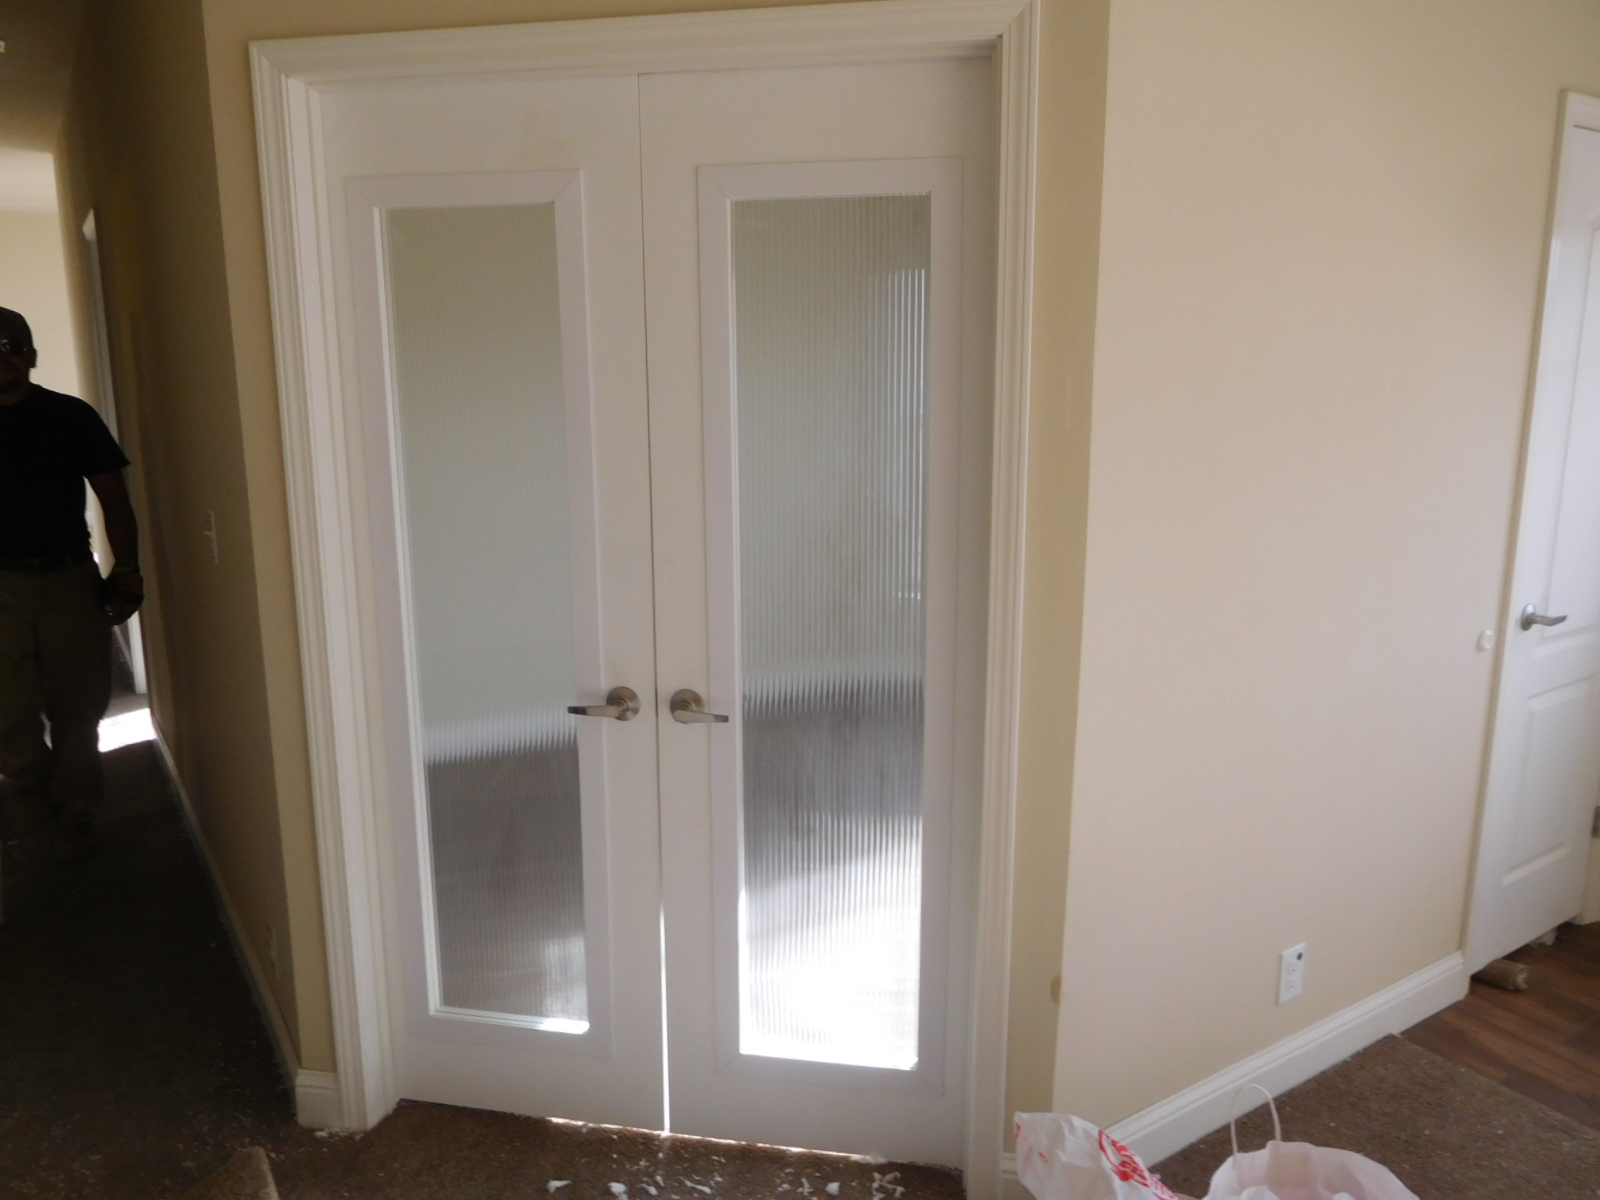 kern-doors & kern-doors - Liscott Custom Homes Ltd.